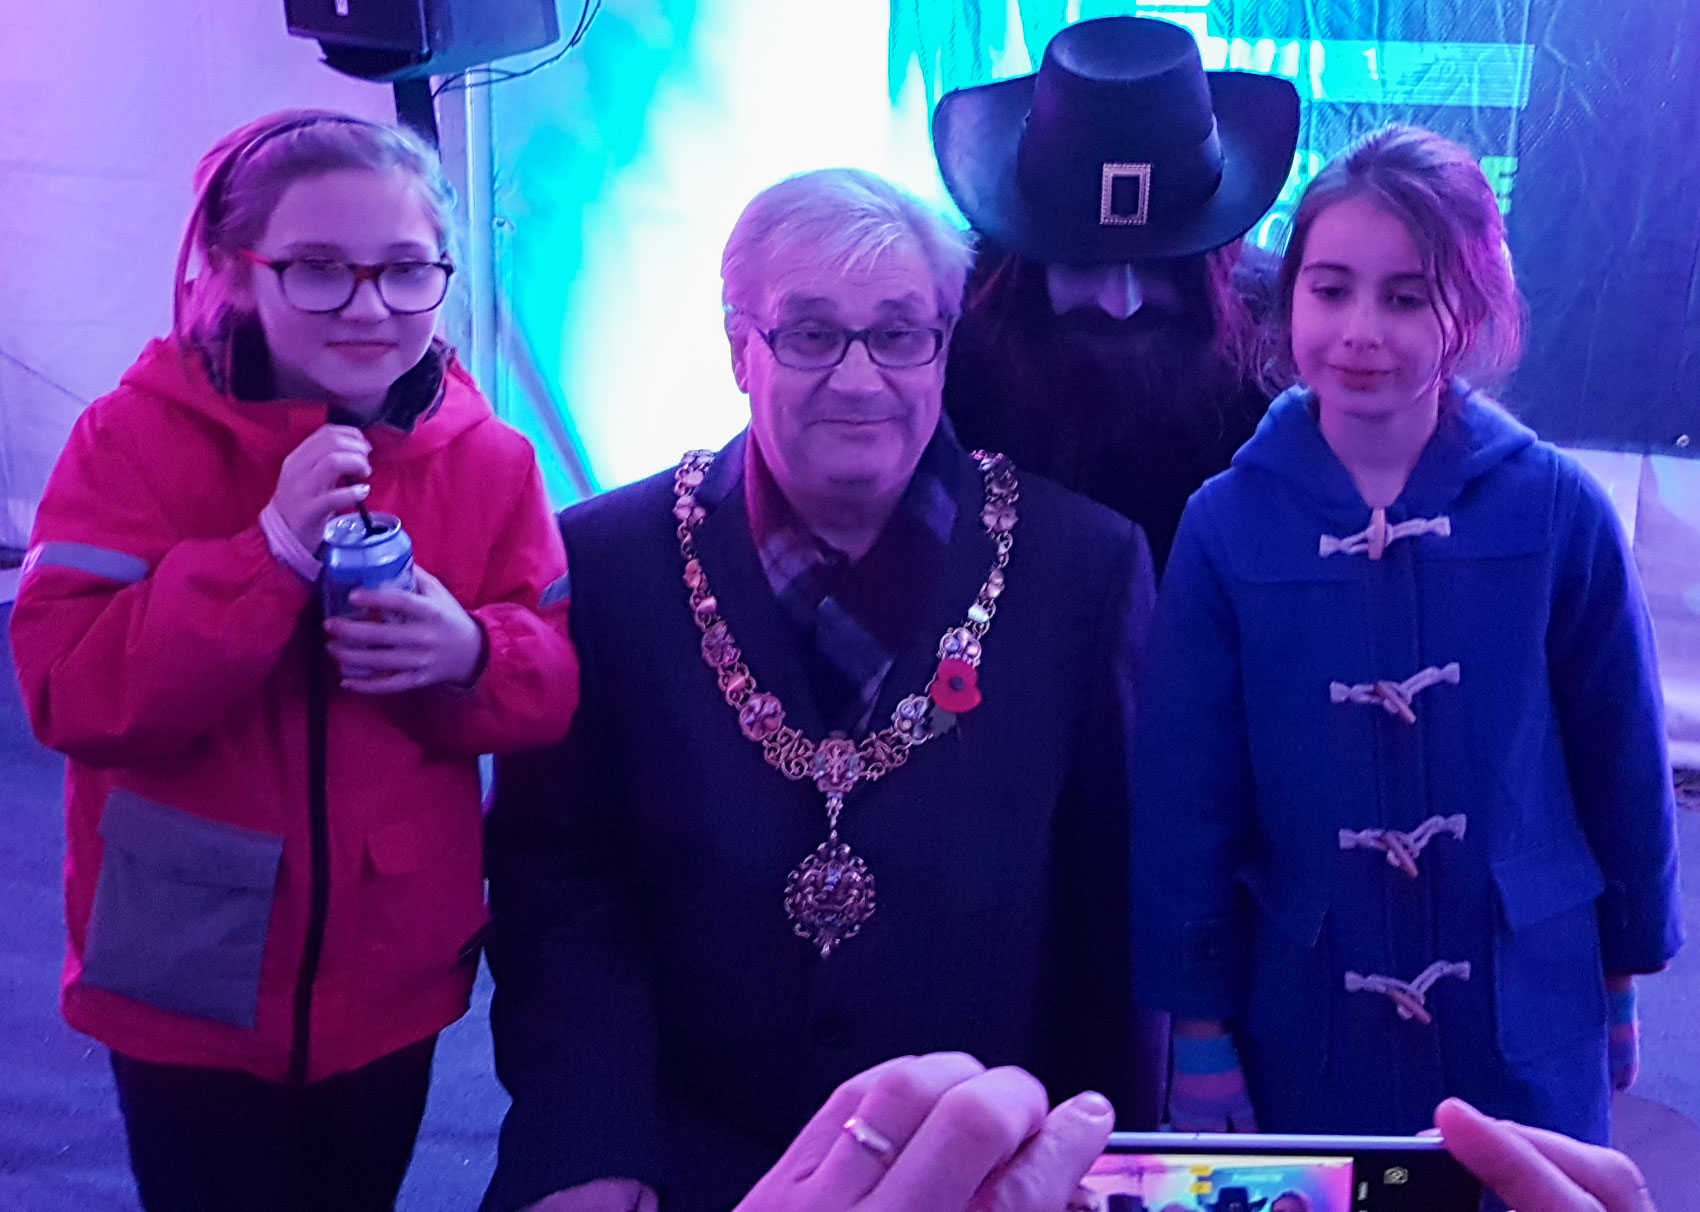 Guy and the Mayor of Cambridge meet the other shortlisted entrant from the 8-11 category: Agatha, right, with her friend Elizabeth.